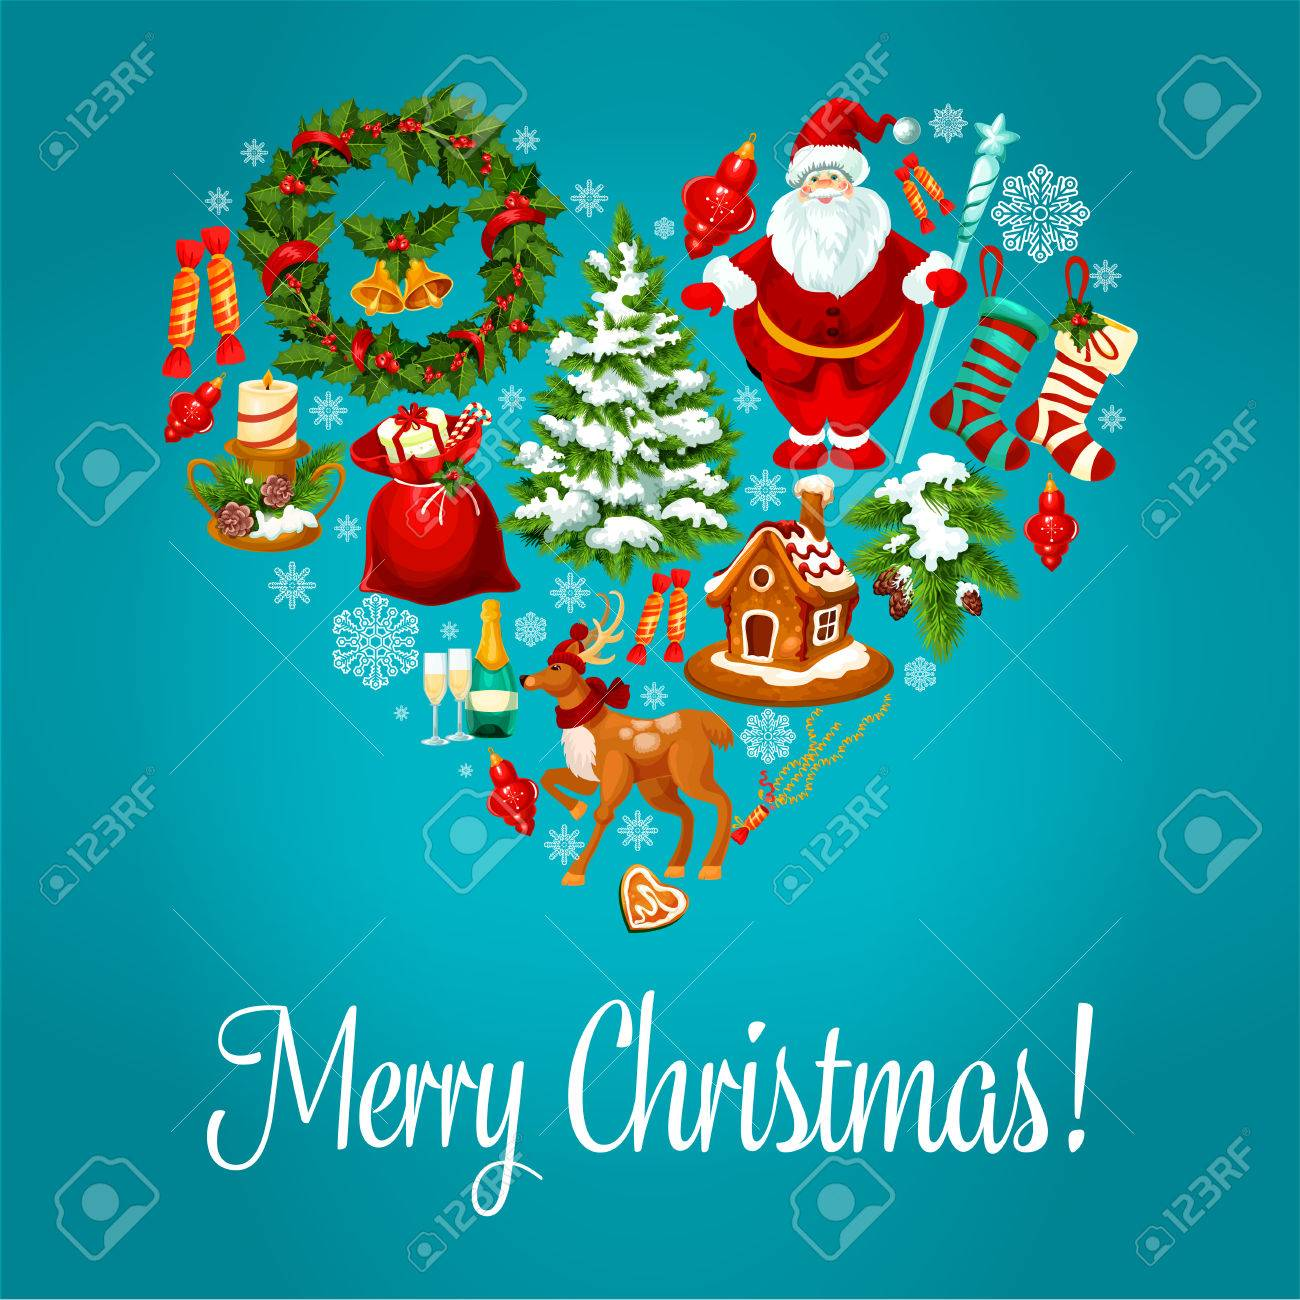 Merry Christmas Vector Greeting With Christmas Symbols In Heart